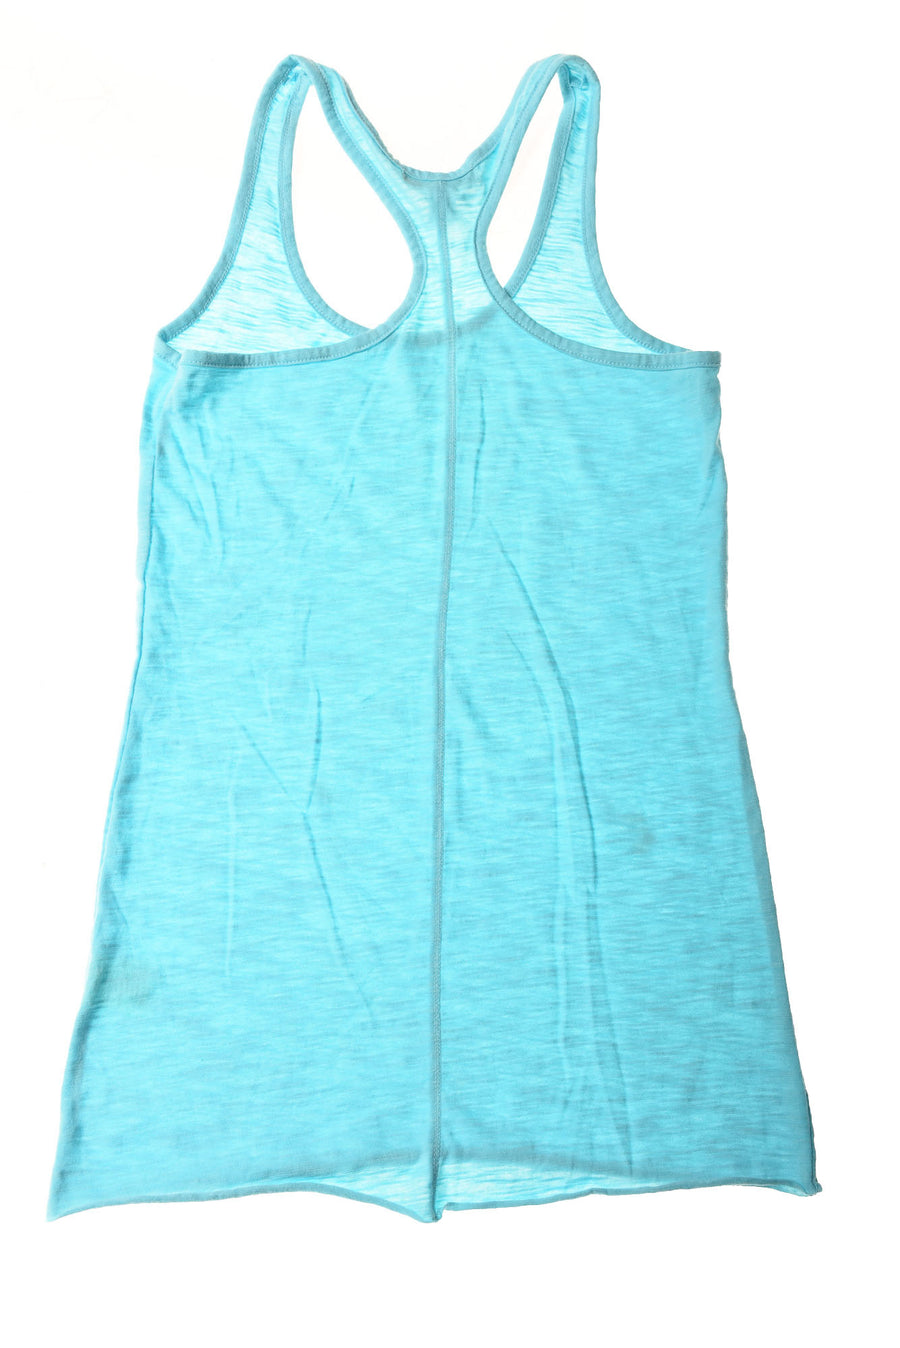 USED Delia*s Women's Top X-Small Blue